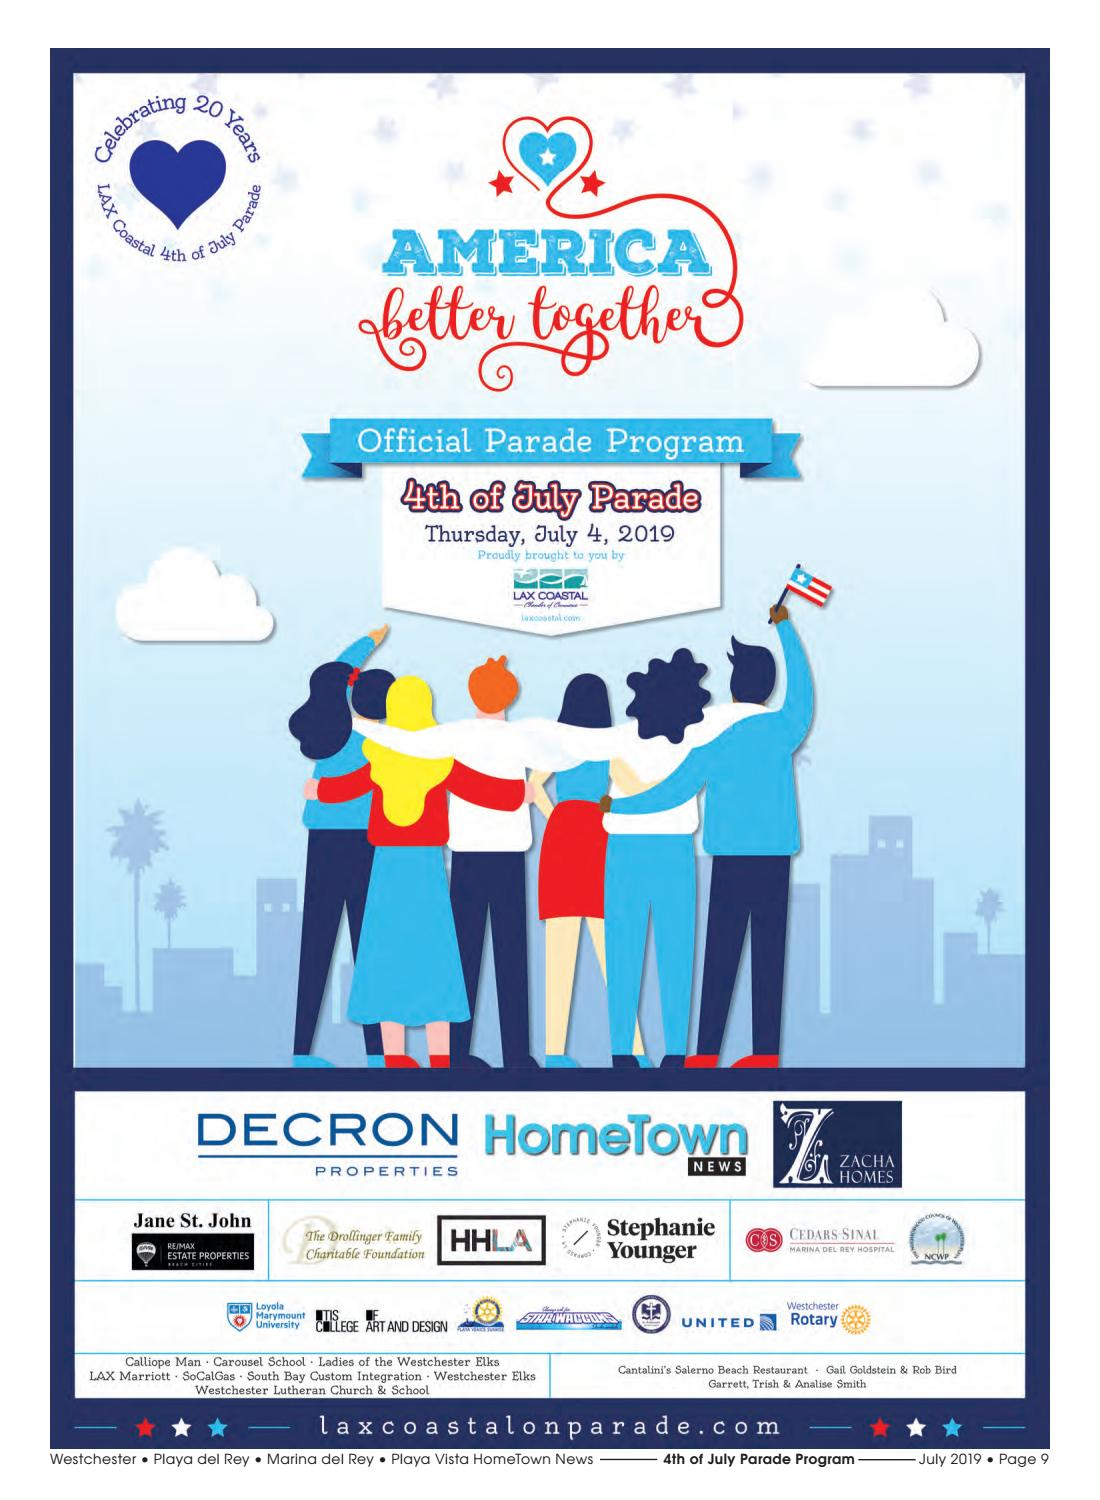 2019 LAX Coastal Fourth of July Parade Program by